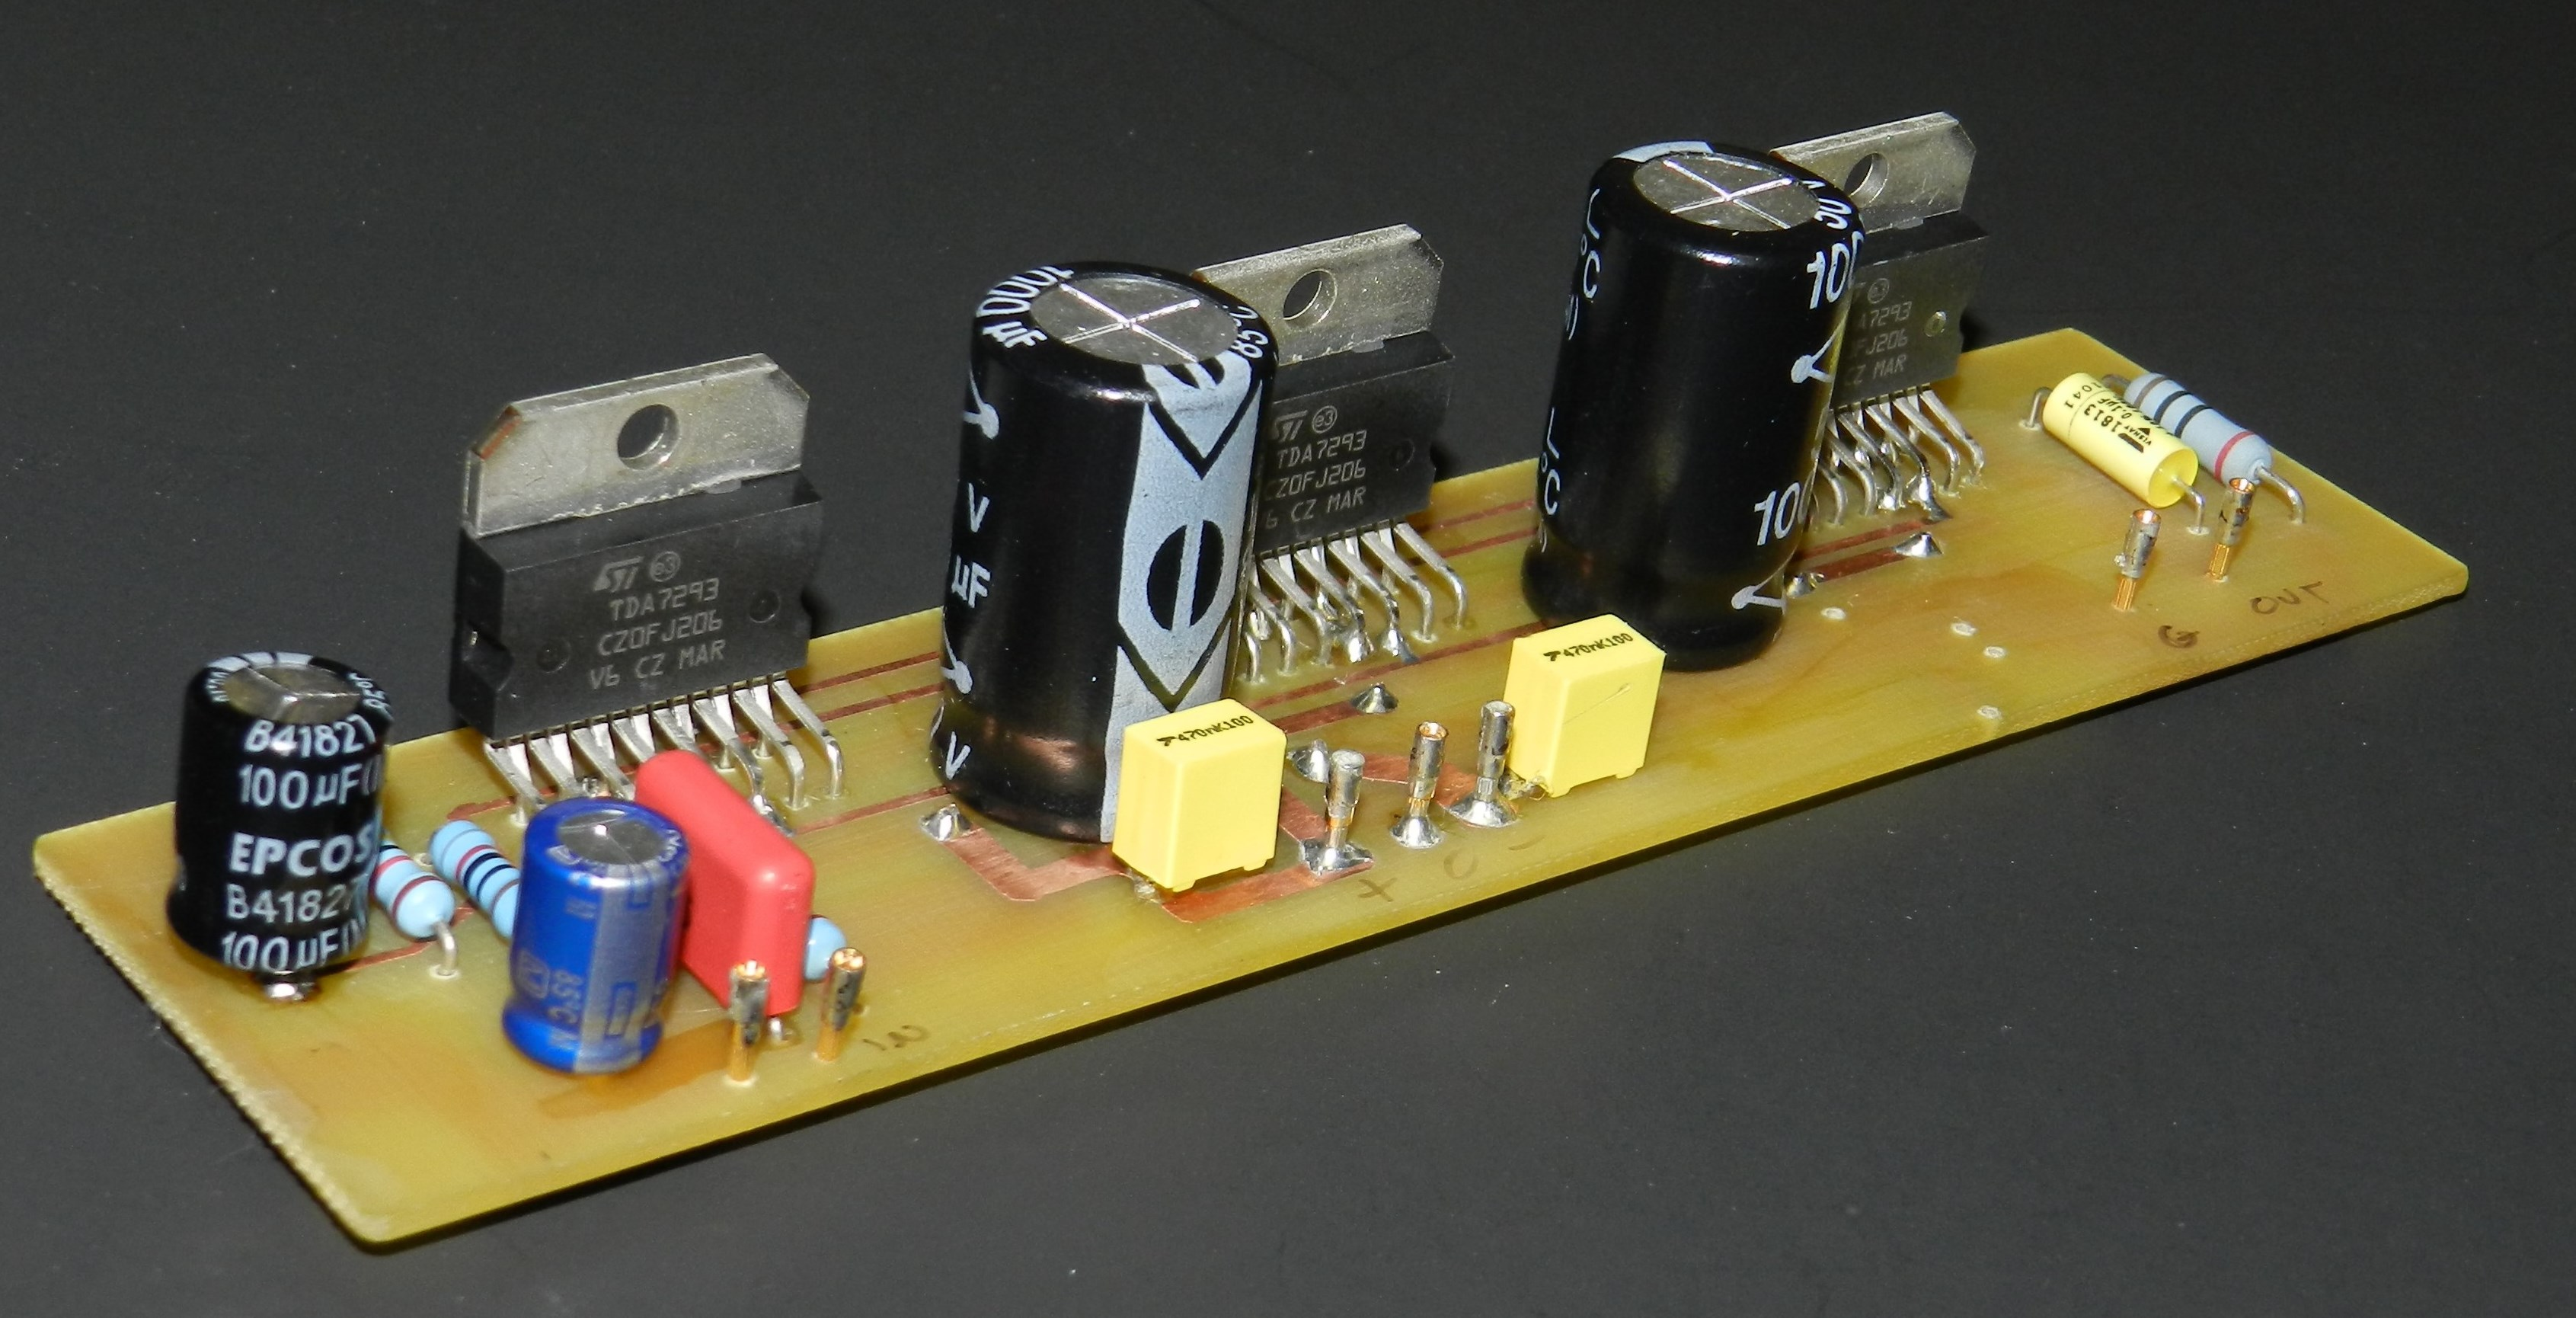 Tda7293 Buildaudioamps Operation And Uses Of Integrated Circuits The Is A Monolithic Circuit In Multiwatt15 Package Intended For Use As Audio Class Ab Amplifier High Fidelity Applications